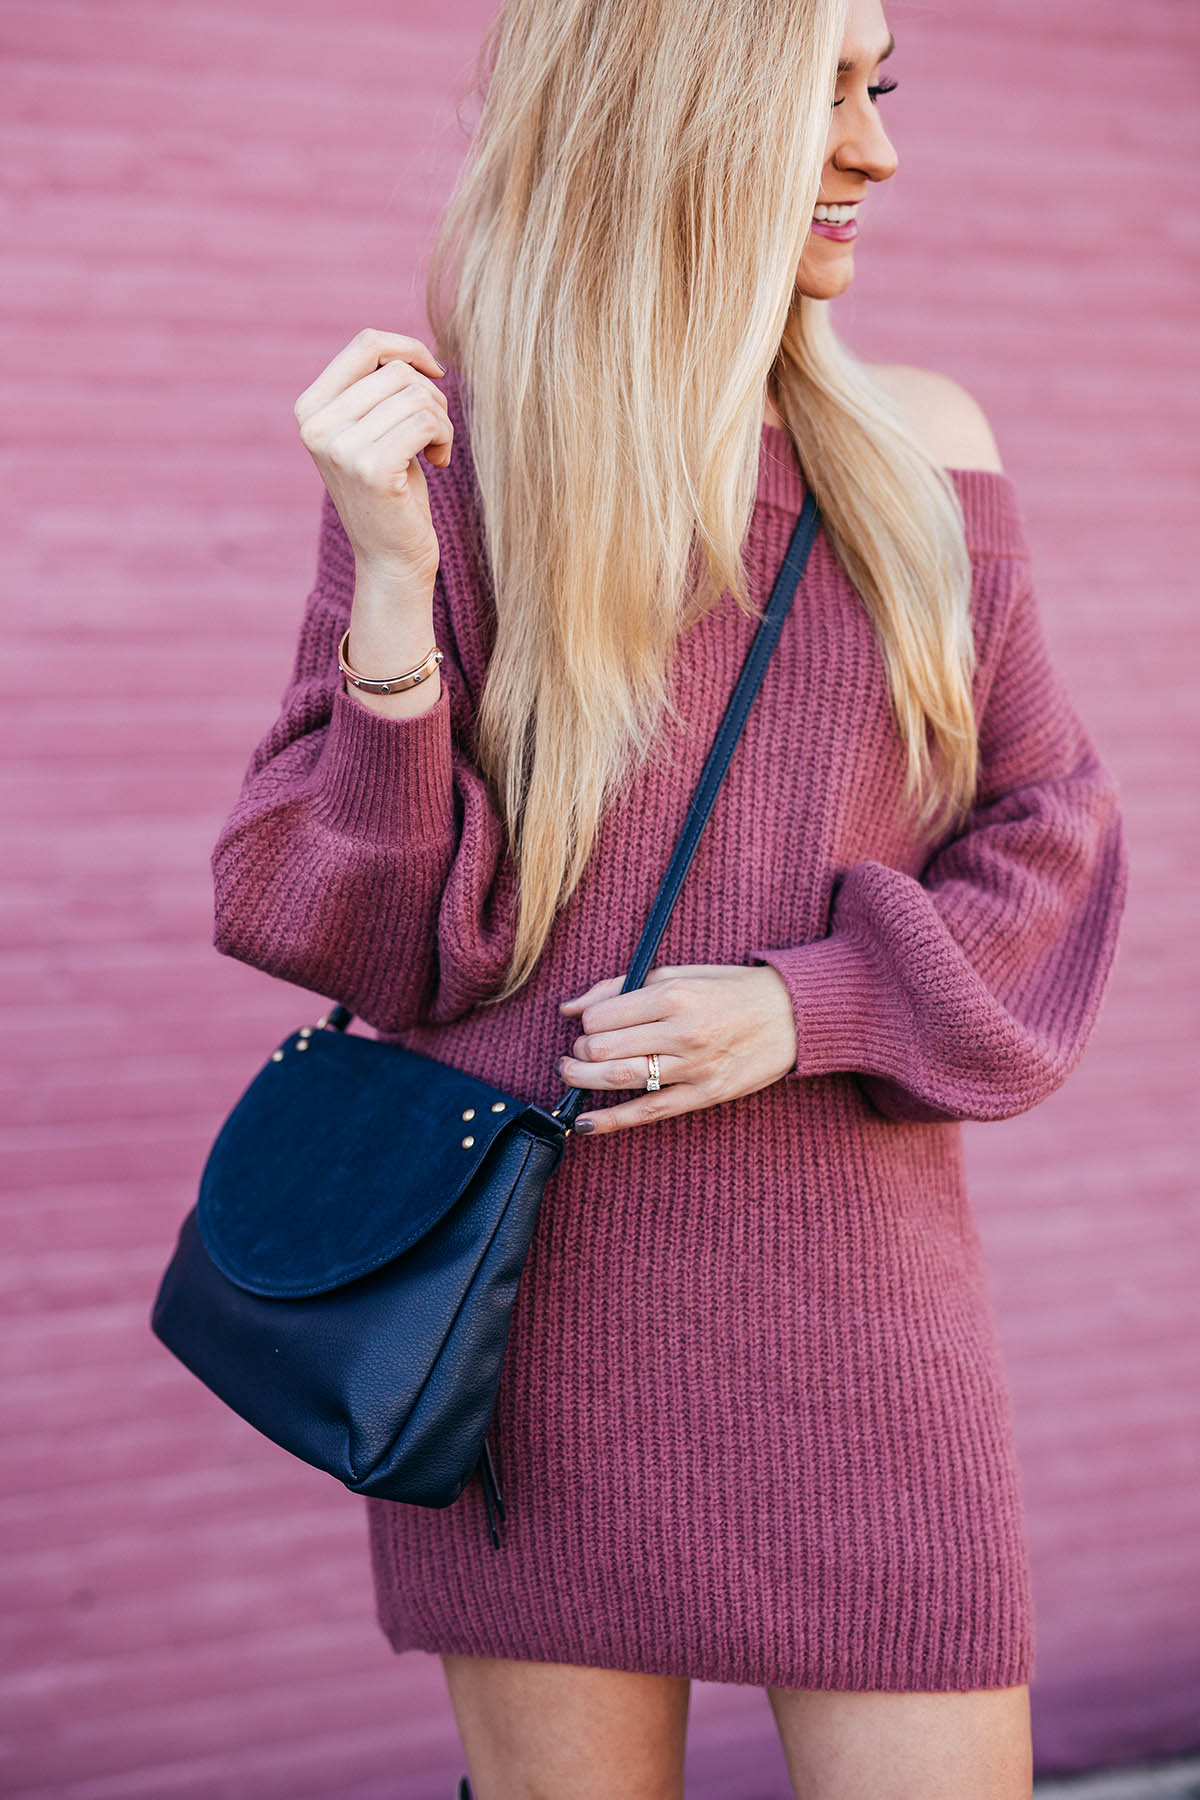 Off The Shoulder Sweater Dress | OTK Boots Under $150 | Fall Outfit Ideas